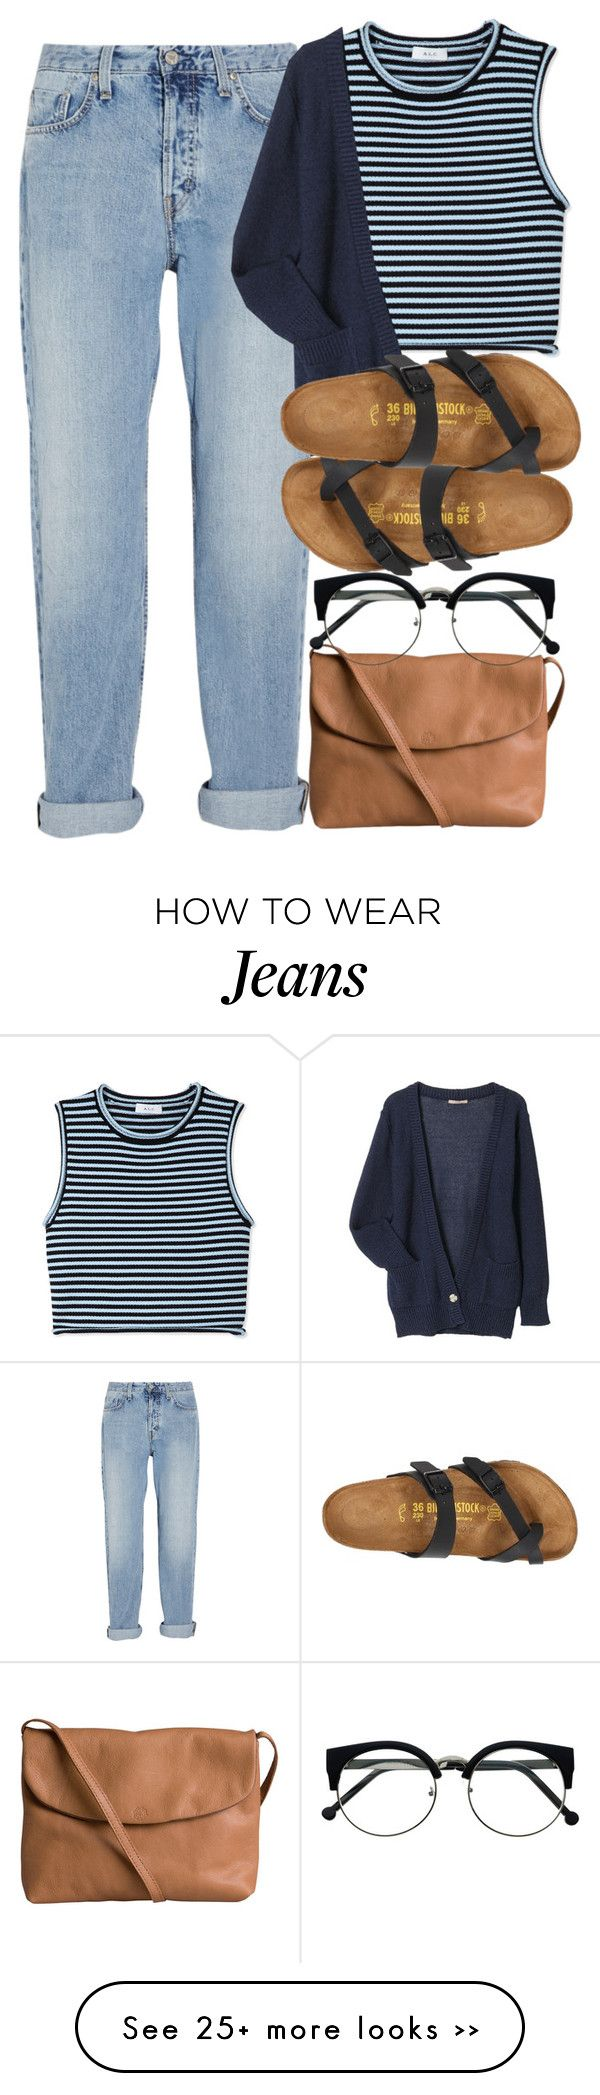 """""""Untitled #1313"""" by noka76 on Polyvore featuring Pieces, MiH Jeans, A.L.C. and Birkenstock"""